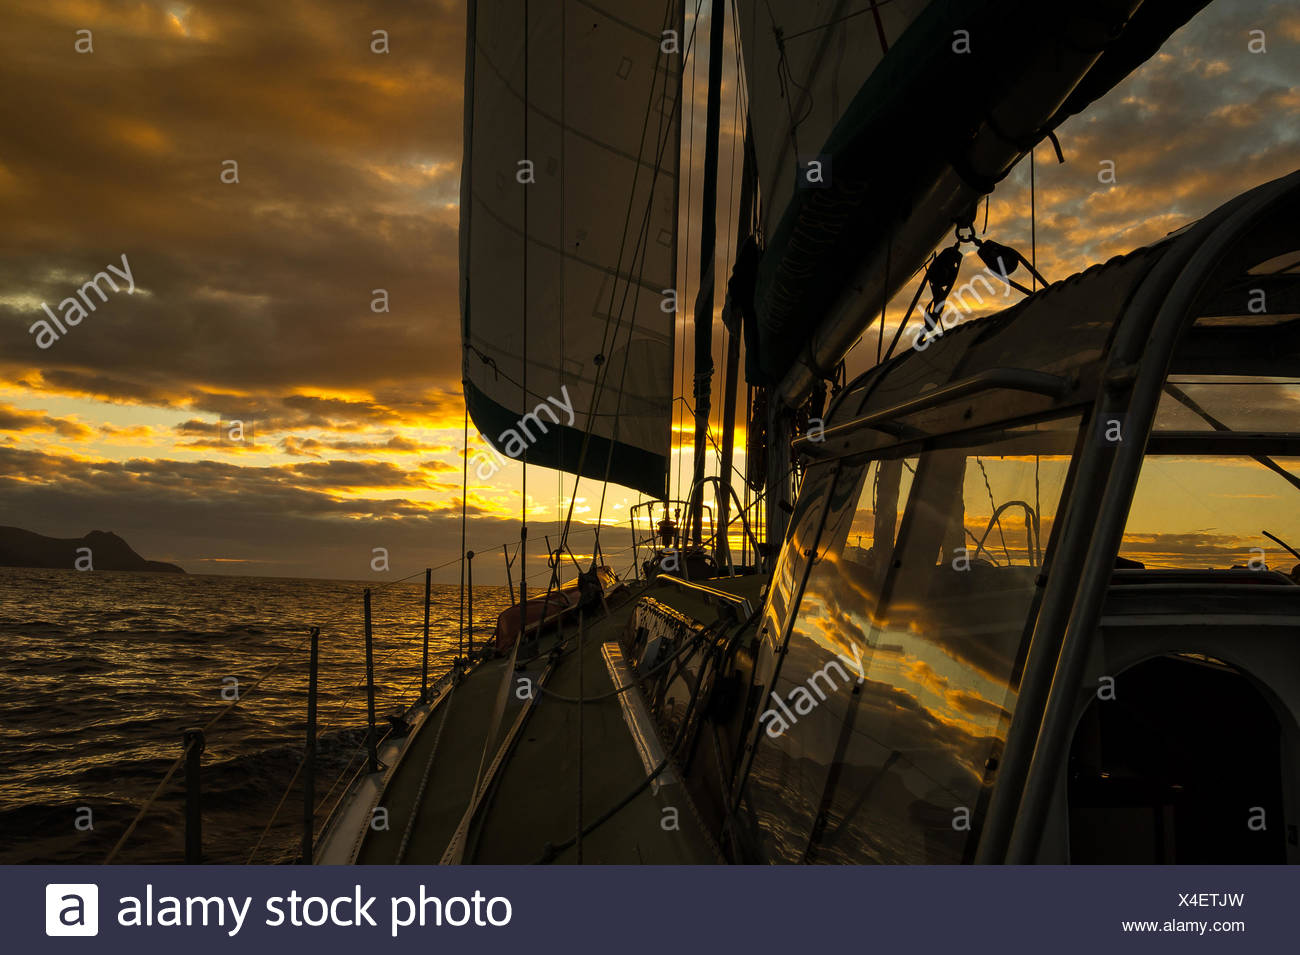 View from deck of boat - Stock Image